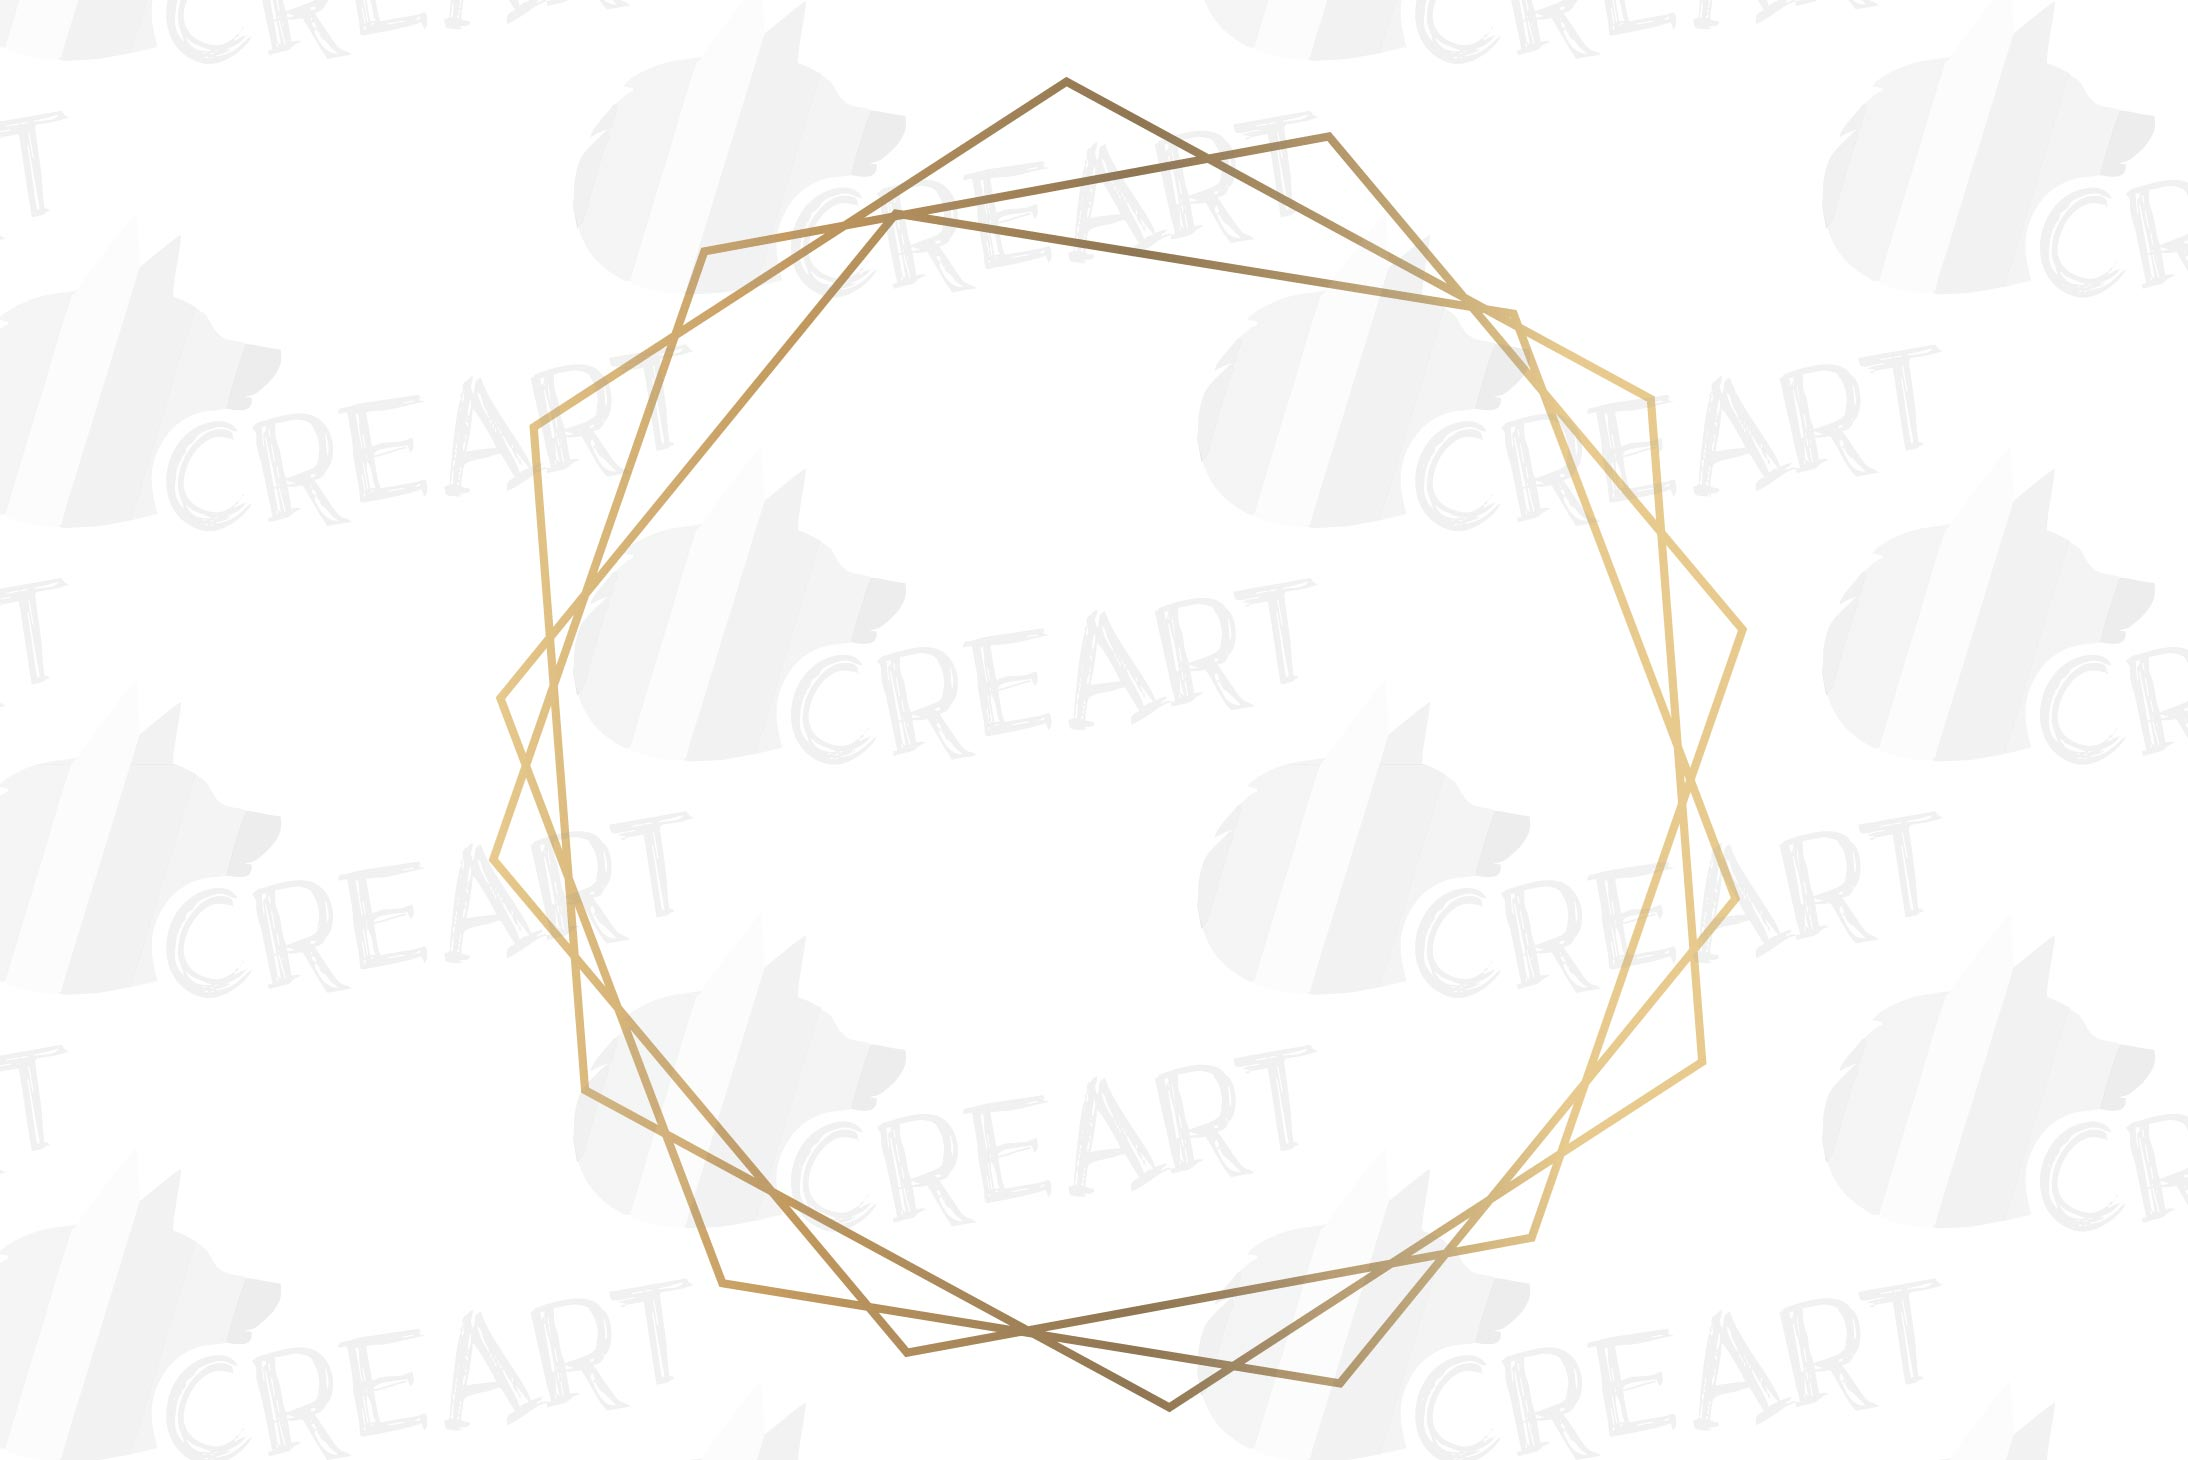 Elegant wedding geometric golden frames, lineal frames svg example image 21